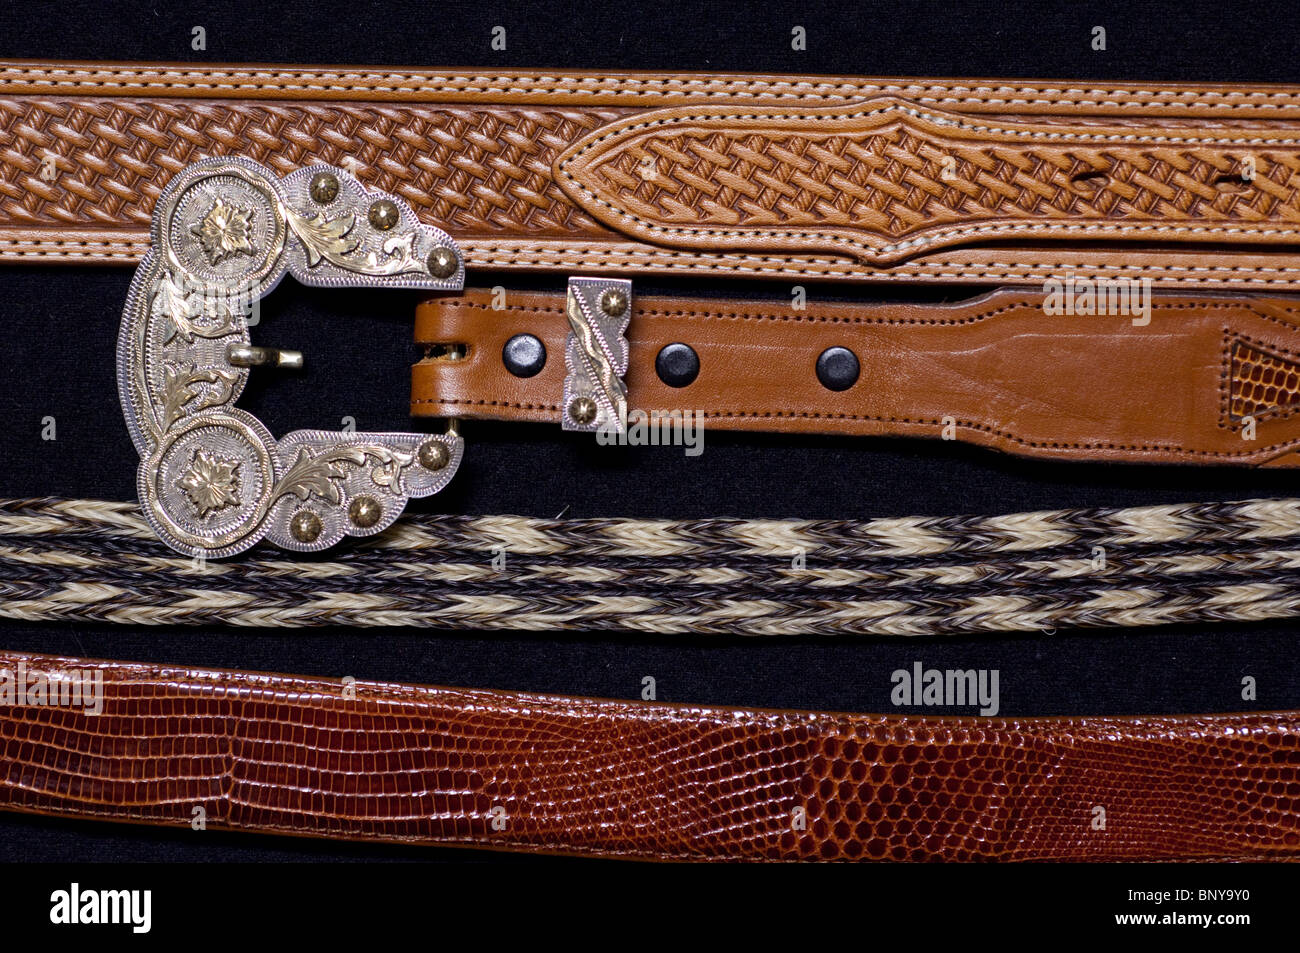 Sterling silver & gold hand-engraved Western belt buckles on leather & horsehair belts. Property release. - Stock Image